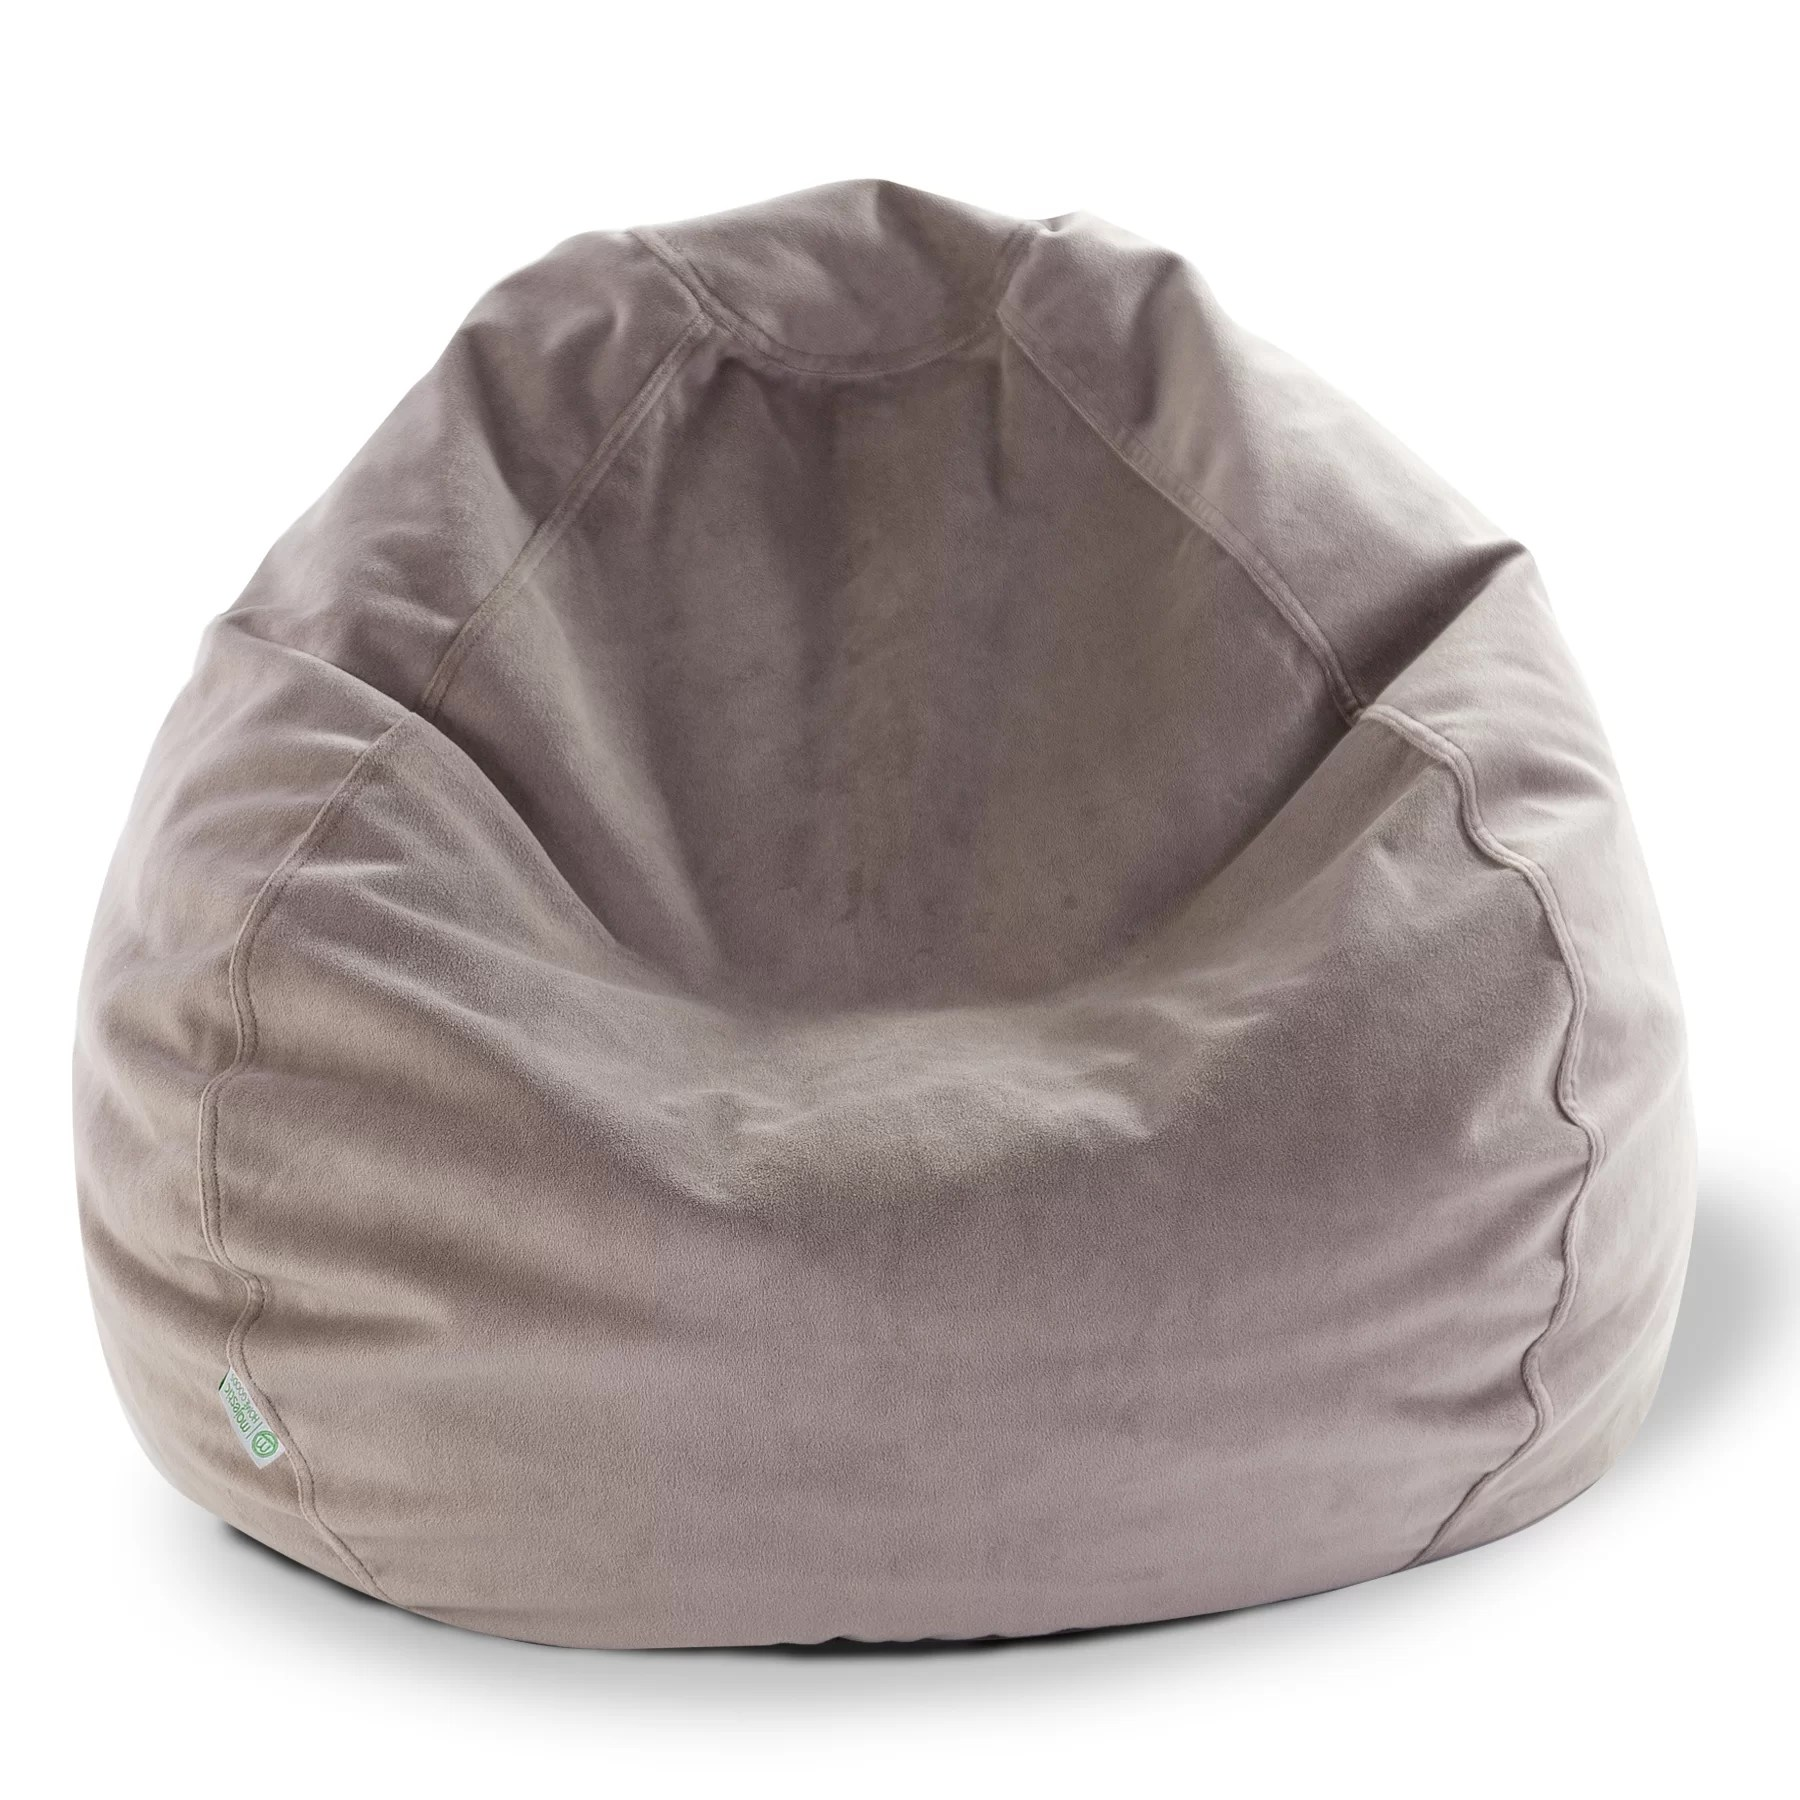 Bean Bags Chair Majestic Home Goods Bean Bag Chair And Reviews Wayfair